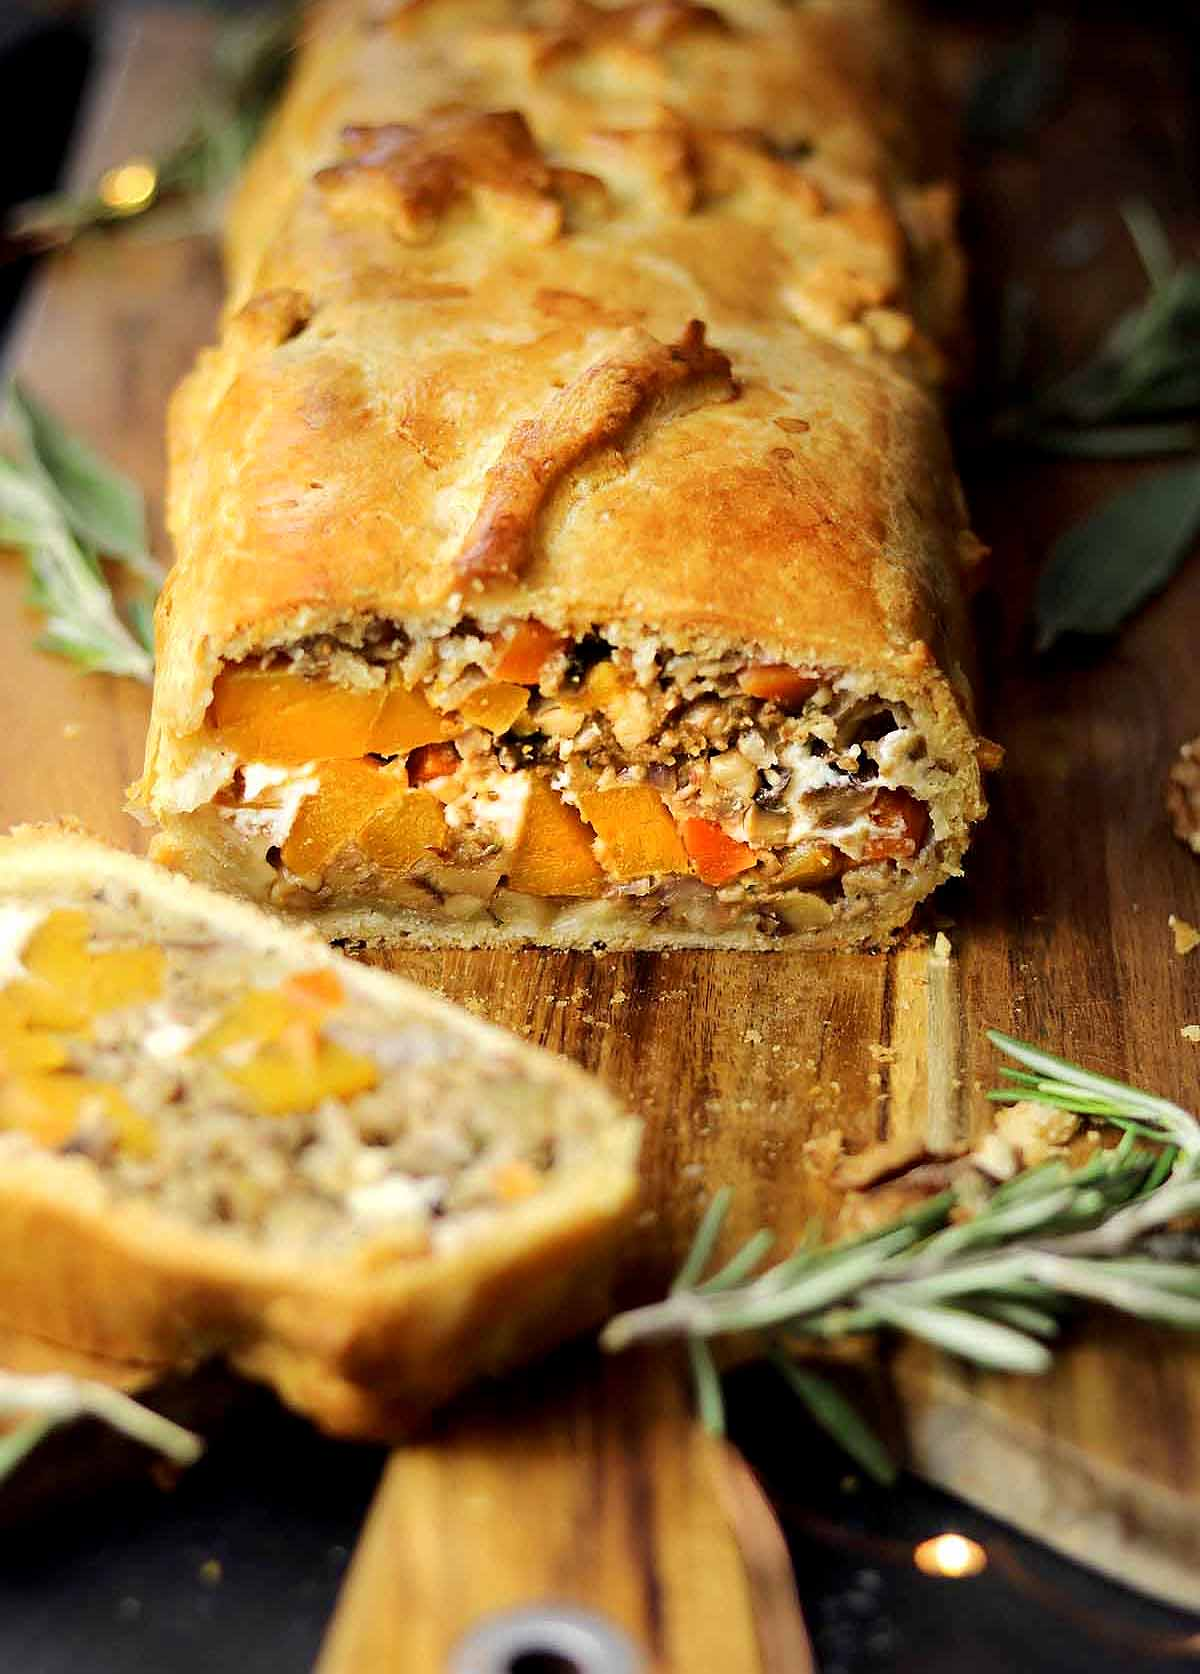 Nut roast wrapped in a pastry